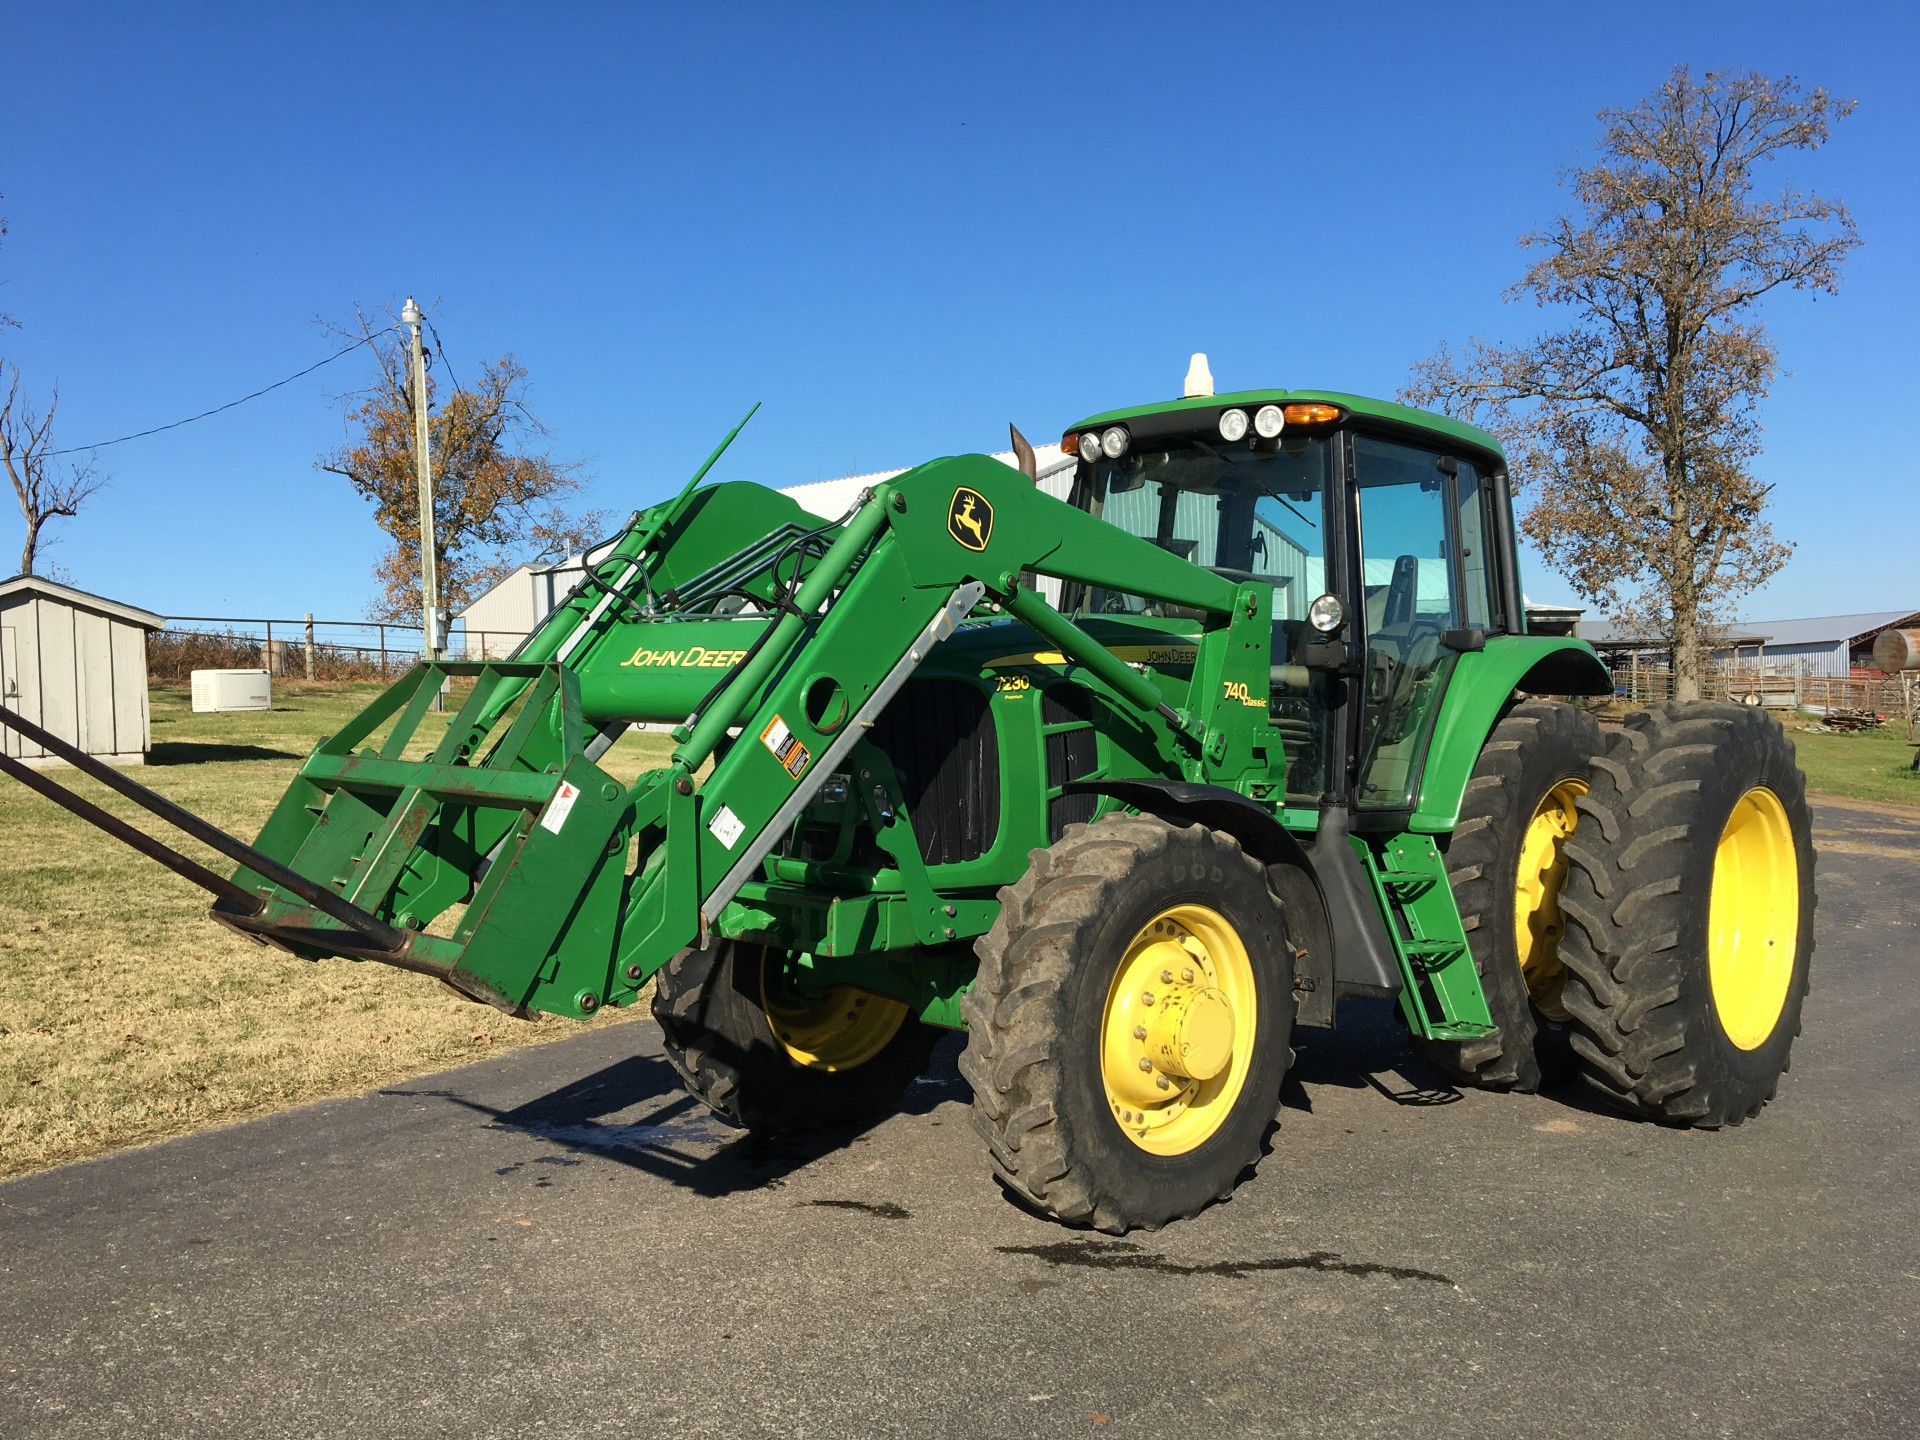 Hay Tractor With Loader : John deere premium mfwd loader tractor w hay spears